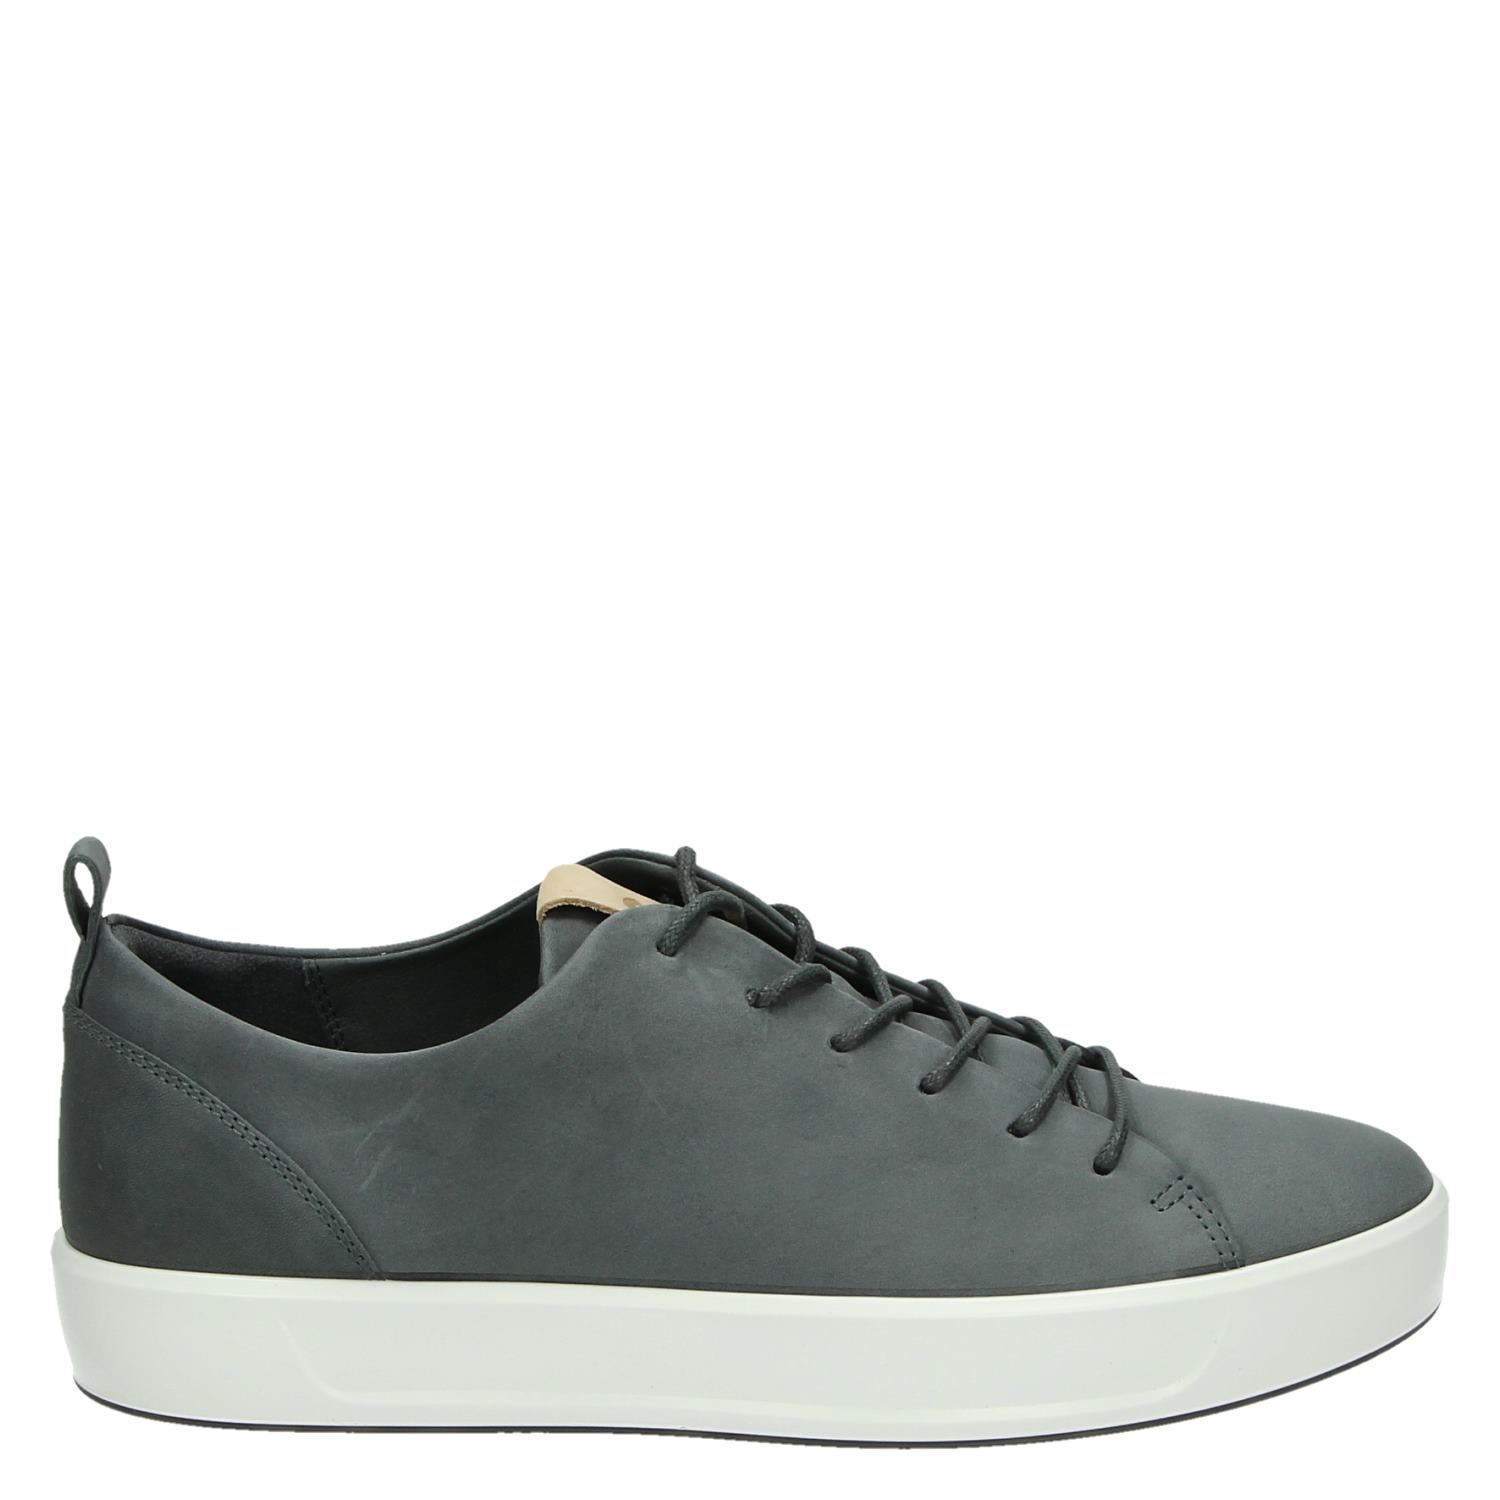 Gris Baskets Ecco - Hommes - Taille 40 uiaQ8S